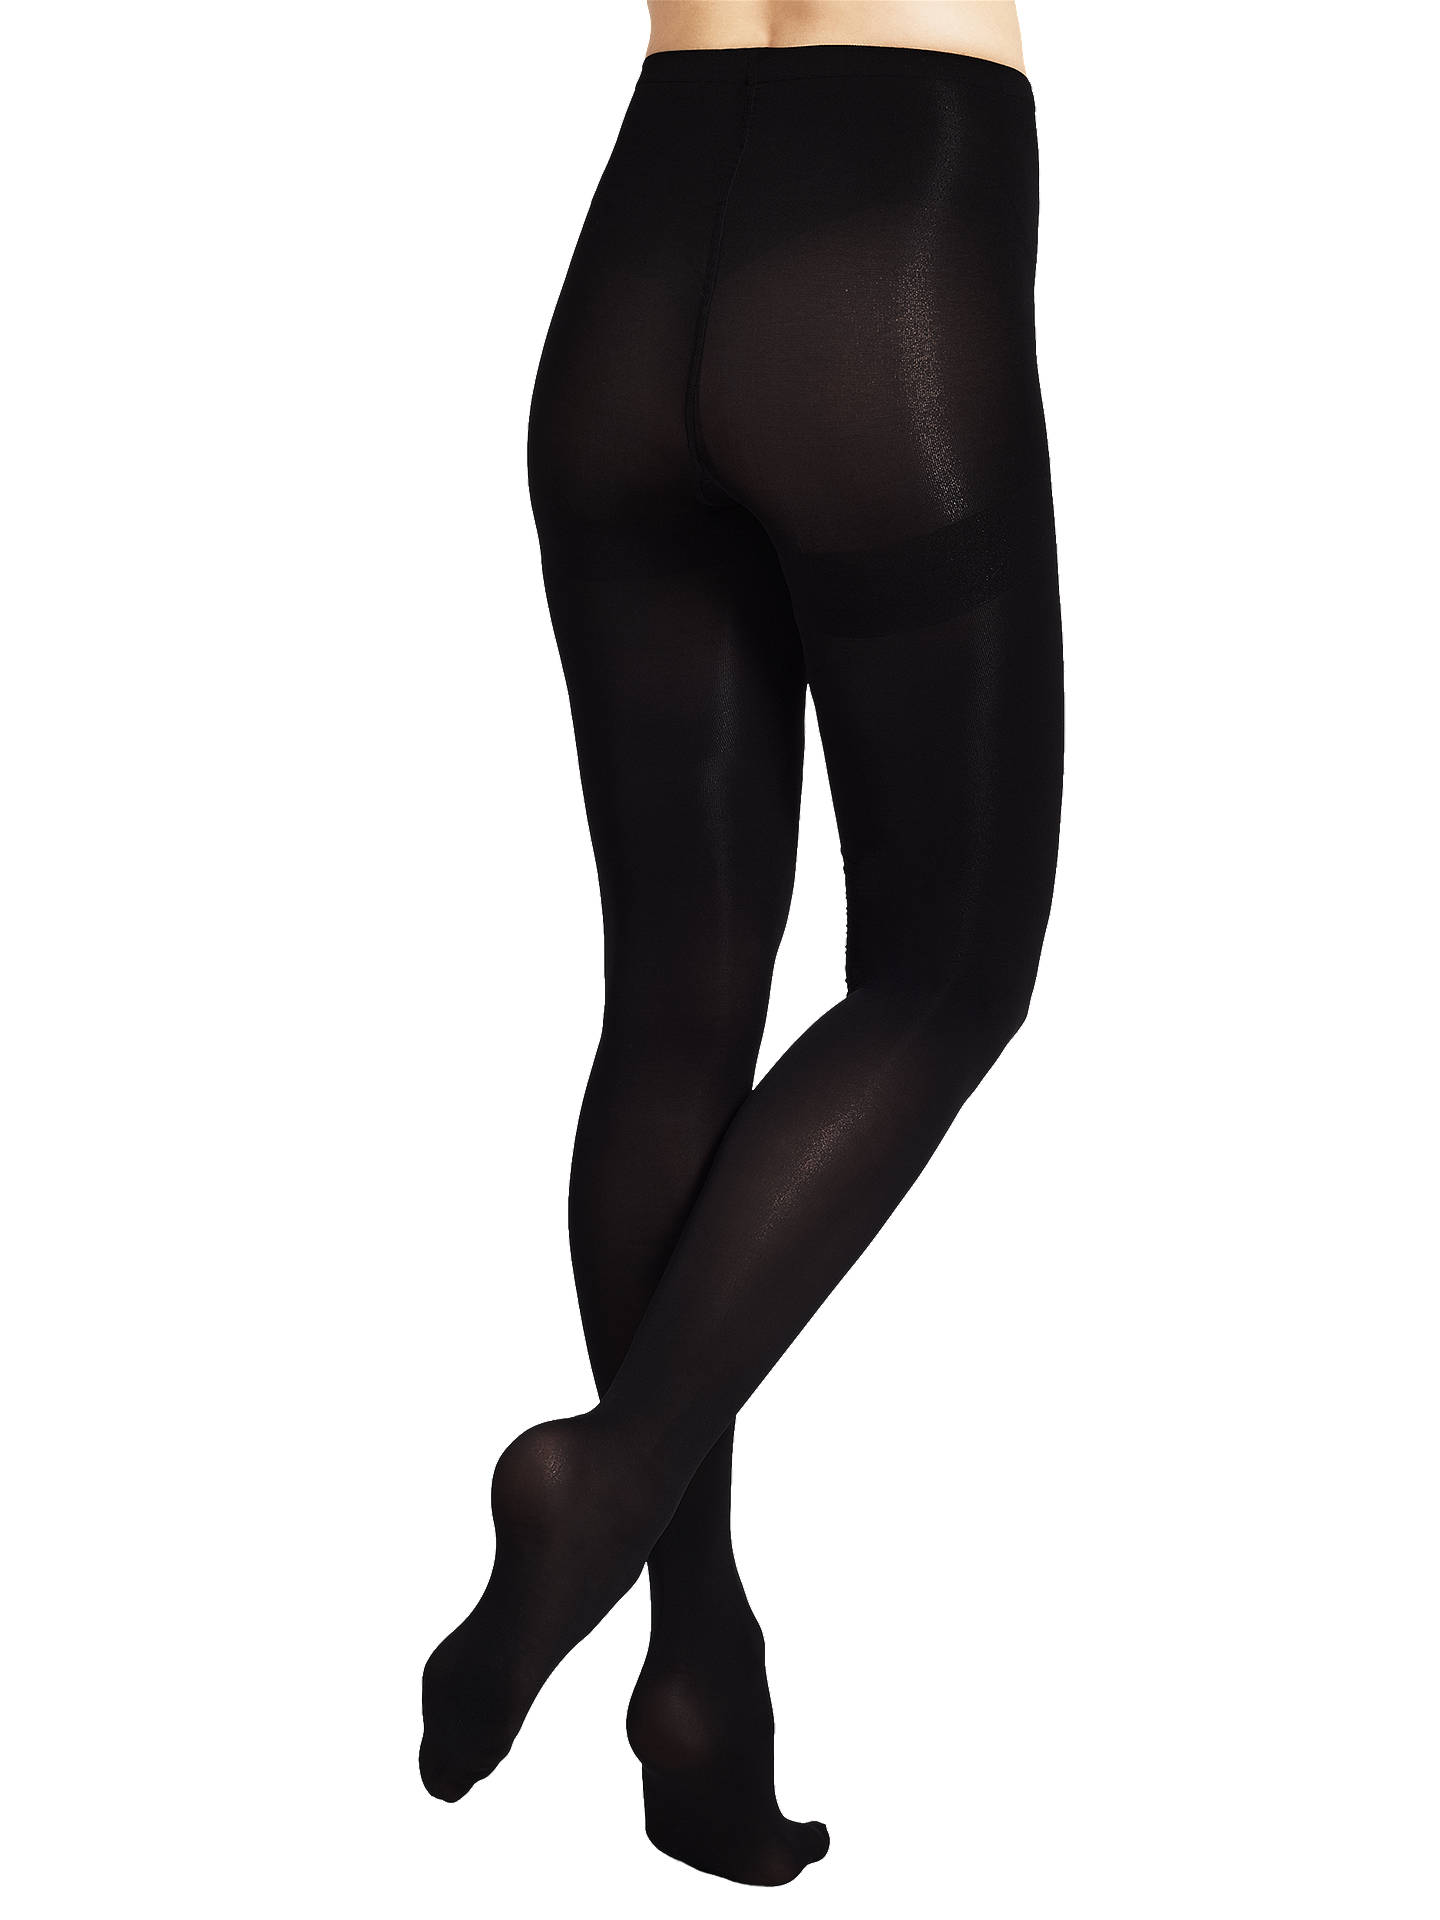 Buy John Lewis & Partners 60 Denier Velvet Touch Body Shaper Opaque Tights, Black, L Online at johnlewis.com